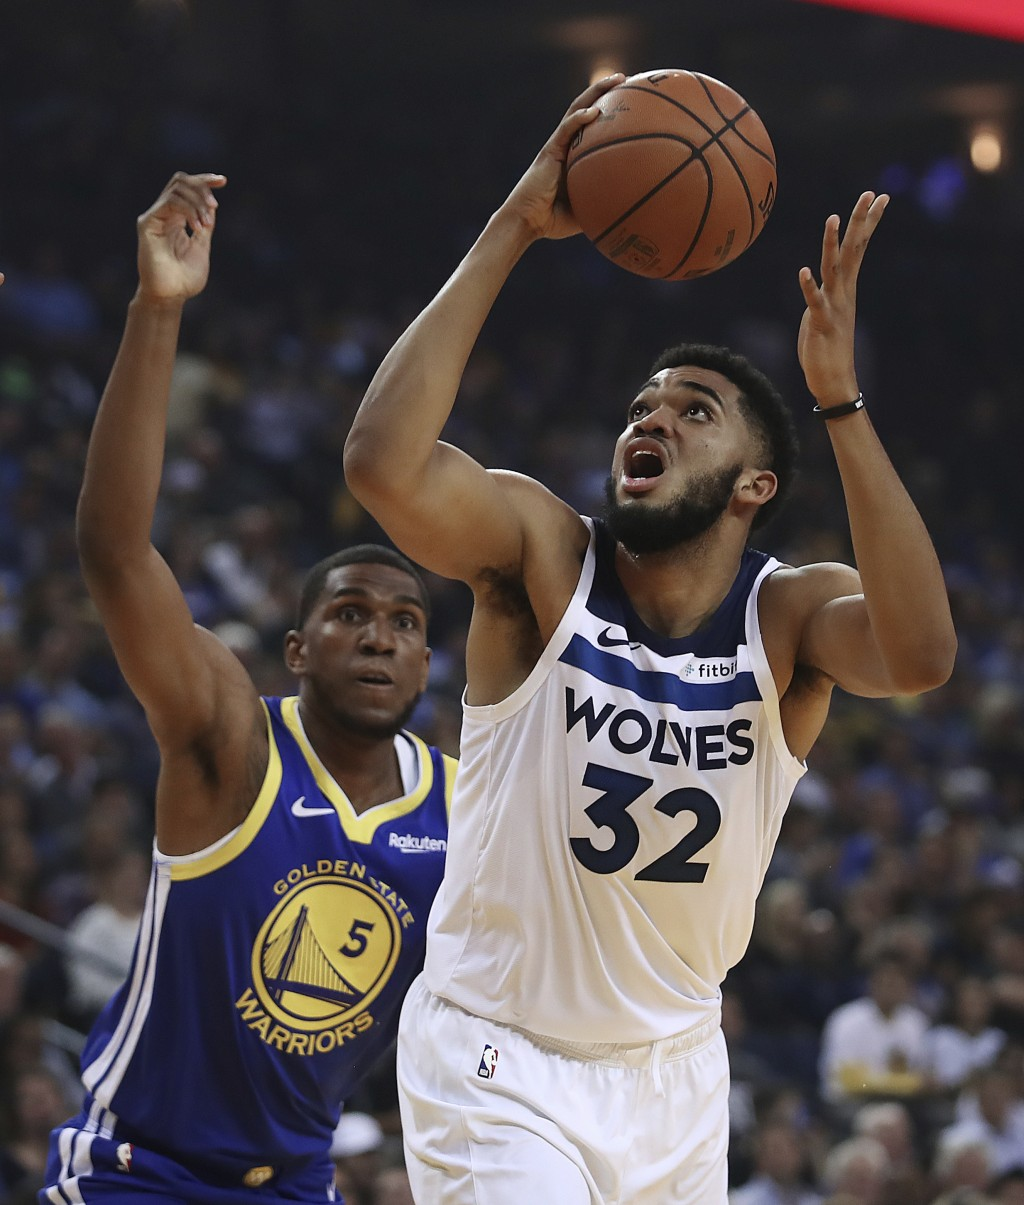 Minnesota Timberwolves' Karl-Anthony Towns, right, looks for a shot next to Golden State Warriors' Kevon Looney (5) during the first half of an NBA ba...